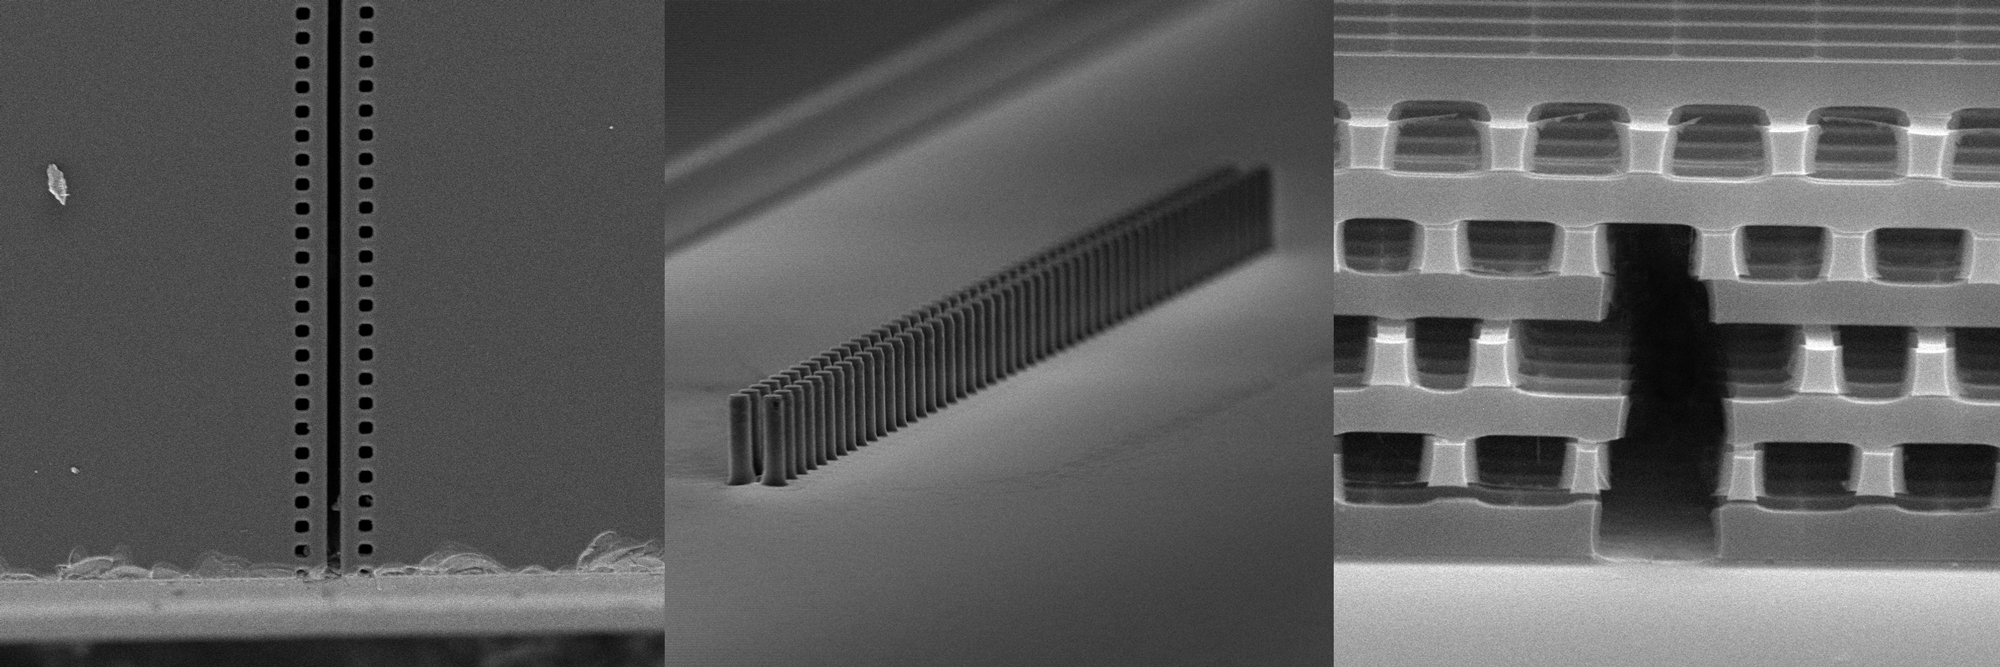 Physicists plan a miniaturized particle accelerator